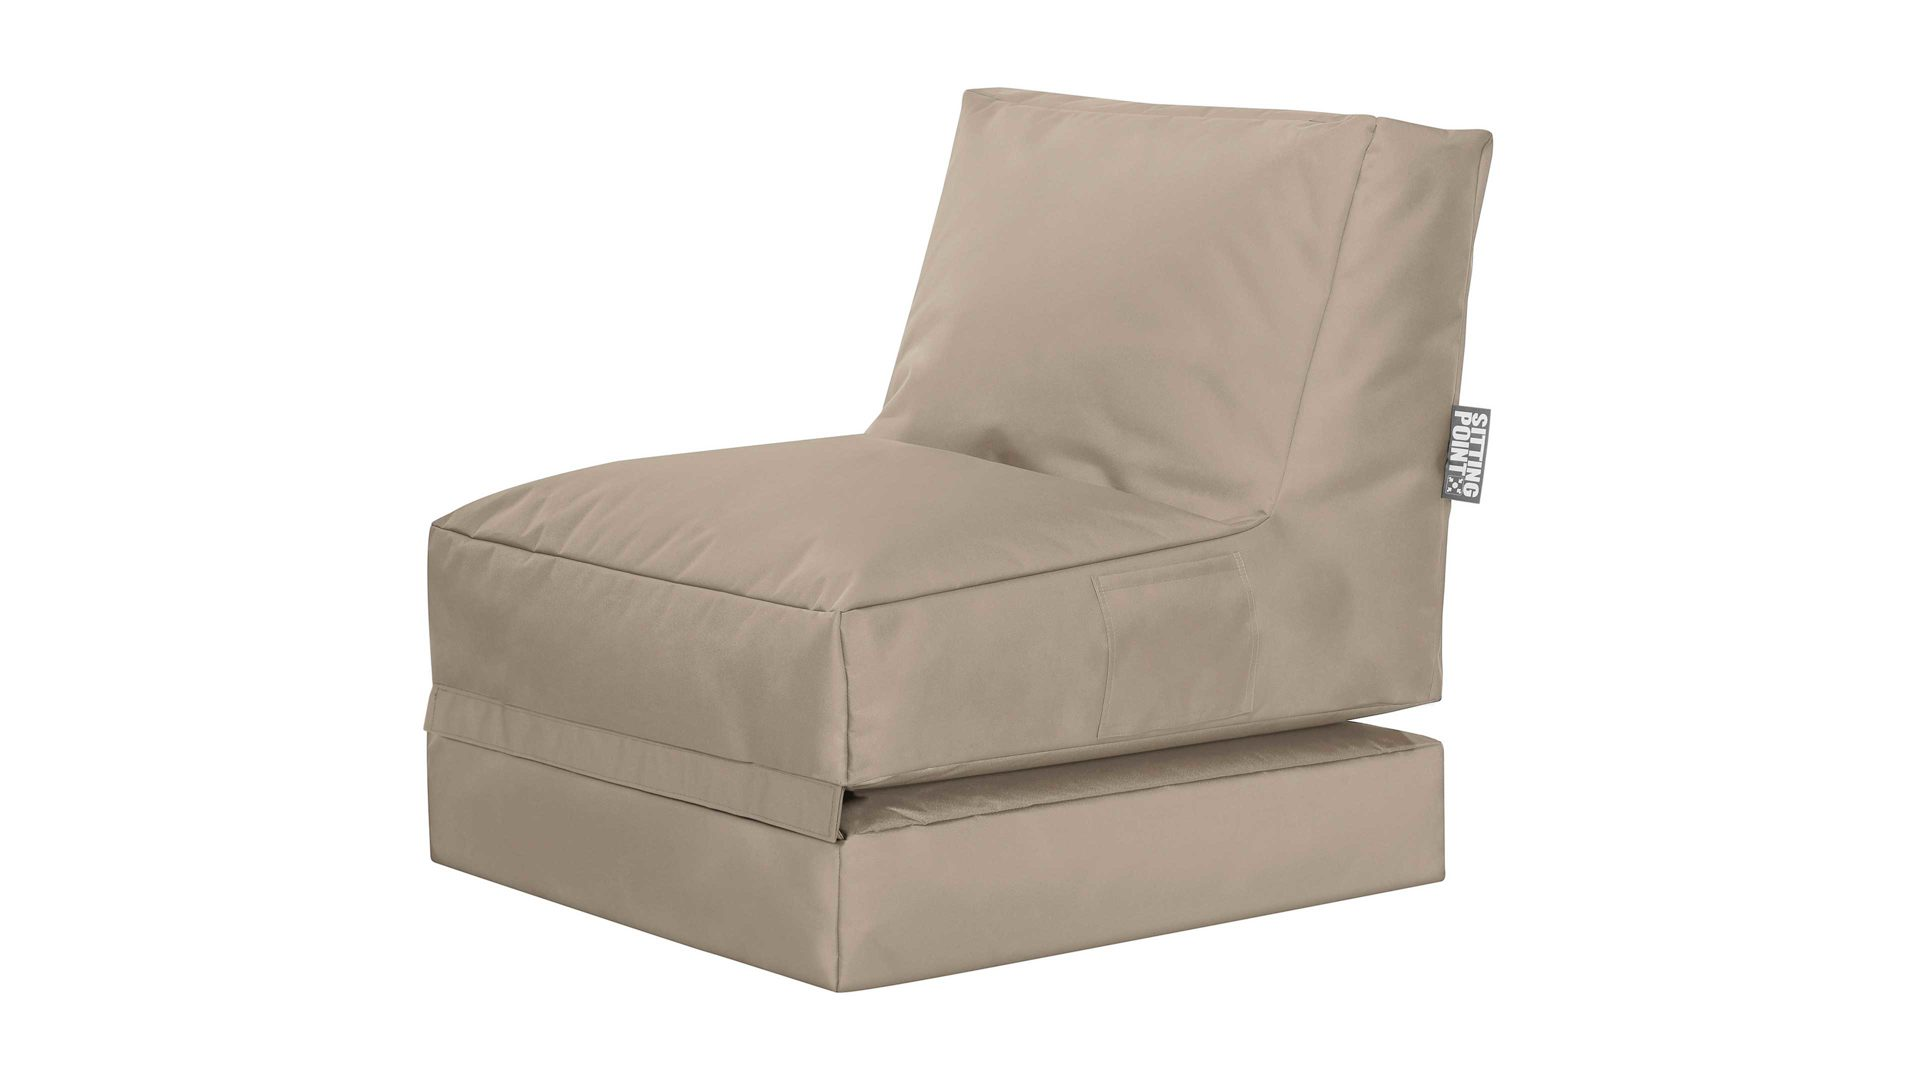 Sitzsack-Liege Magma sitting point aus Stoff in Beige SITTING POINT Funktions-Sitzsack Twist Scuba khakifarbene Kunstfaser - ca. 300 Liter